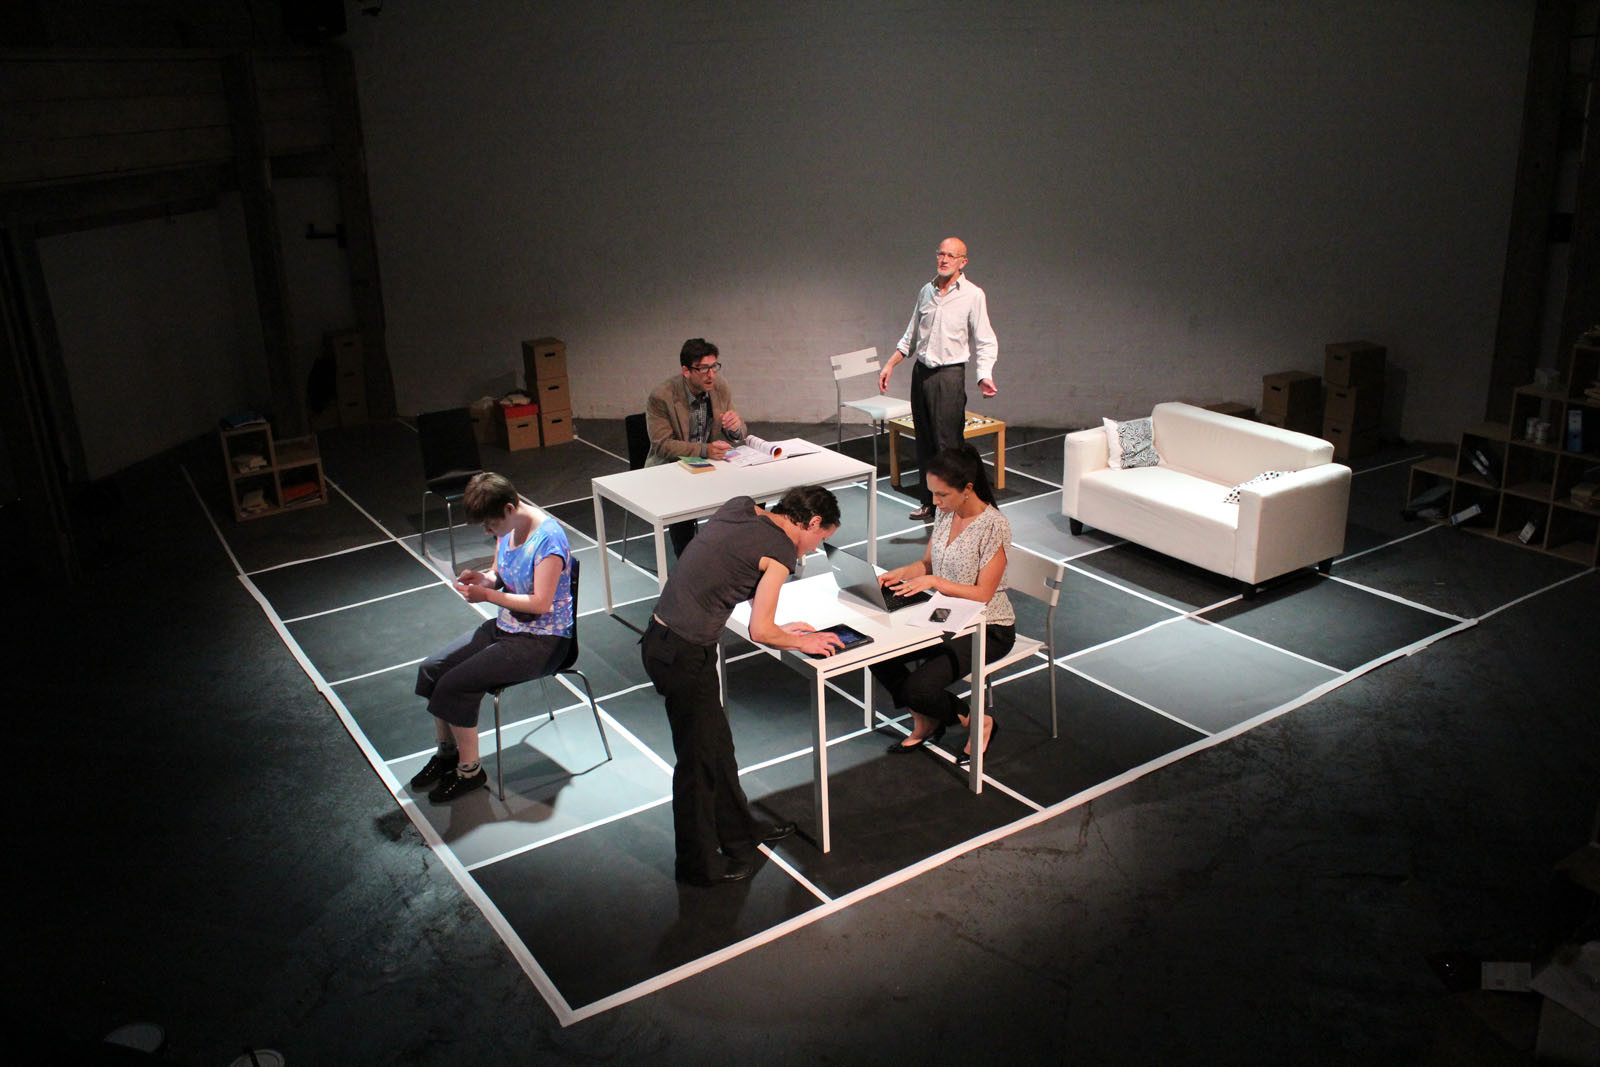 There is a huge huge black and white chessboard with tables, chairs and a sofa positioned on different squares. Five characters sit or stand at different angles engrossed in their work